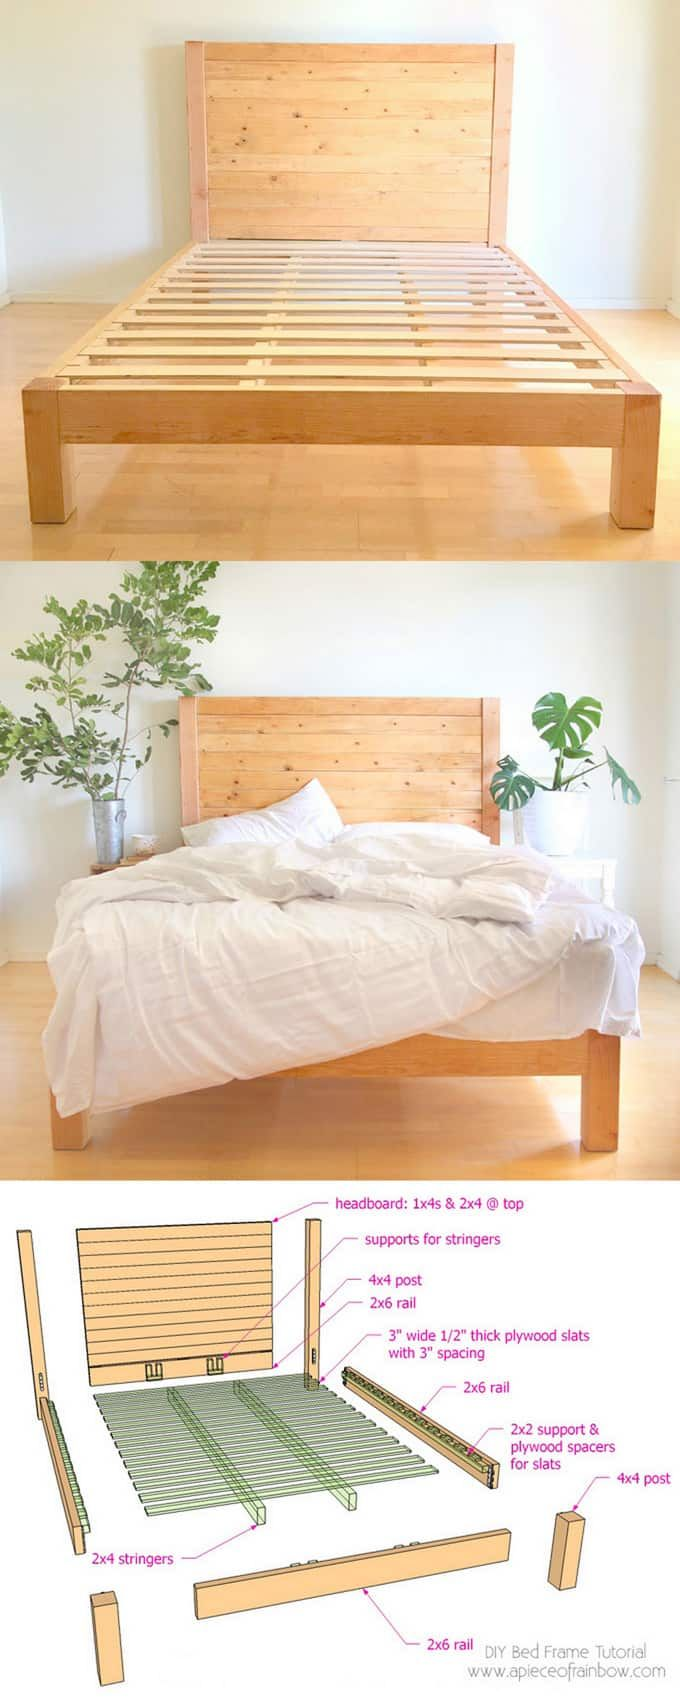 How To Build A Beautiful Diy Bed Frame Wood Headboard Easily Free Plan Variations On King Queen Tw Bed Frame Plans Diy Twin Bed Bed Frame And Headboard